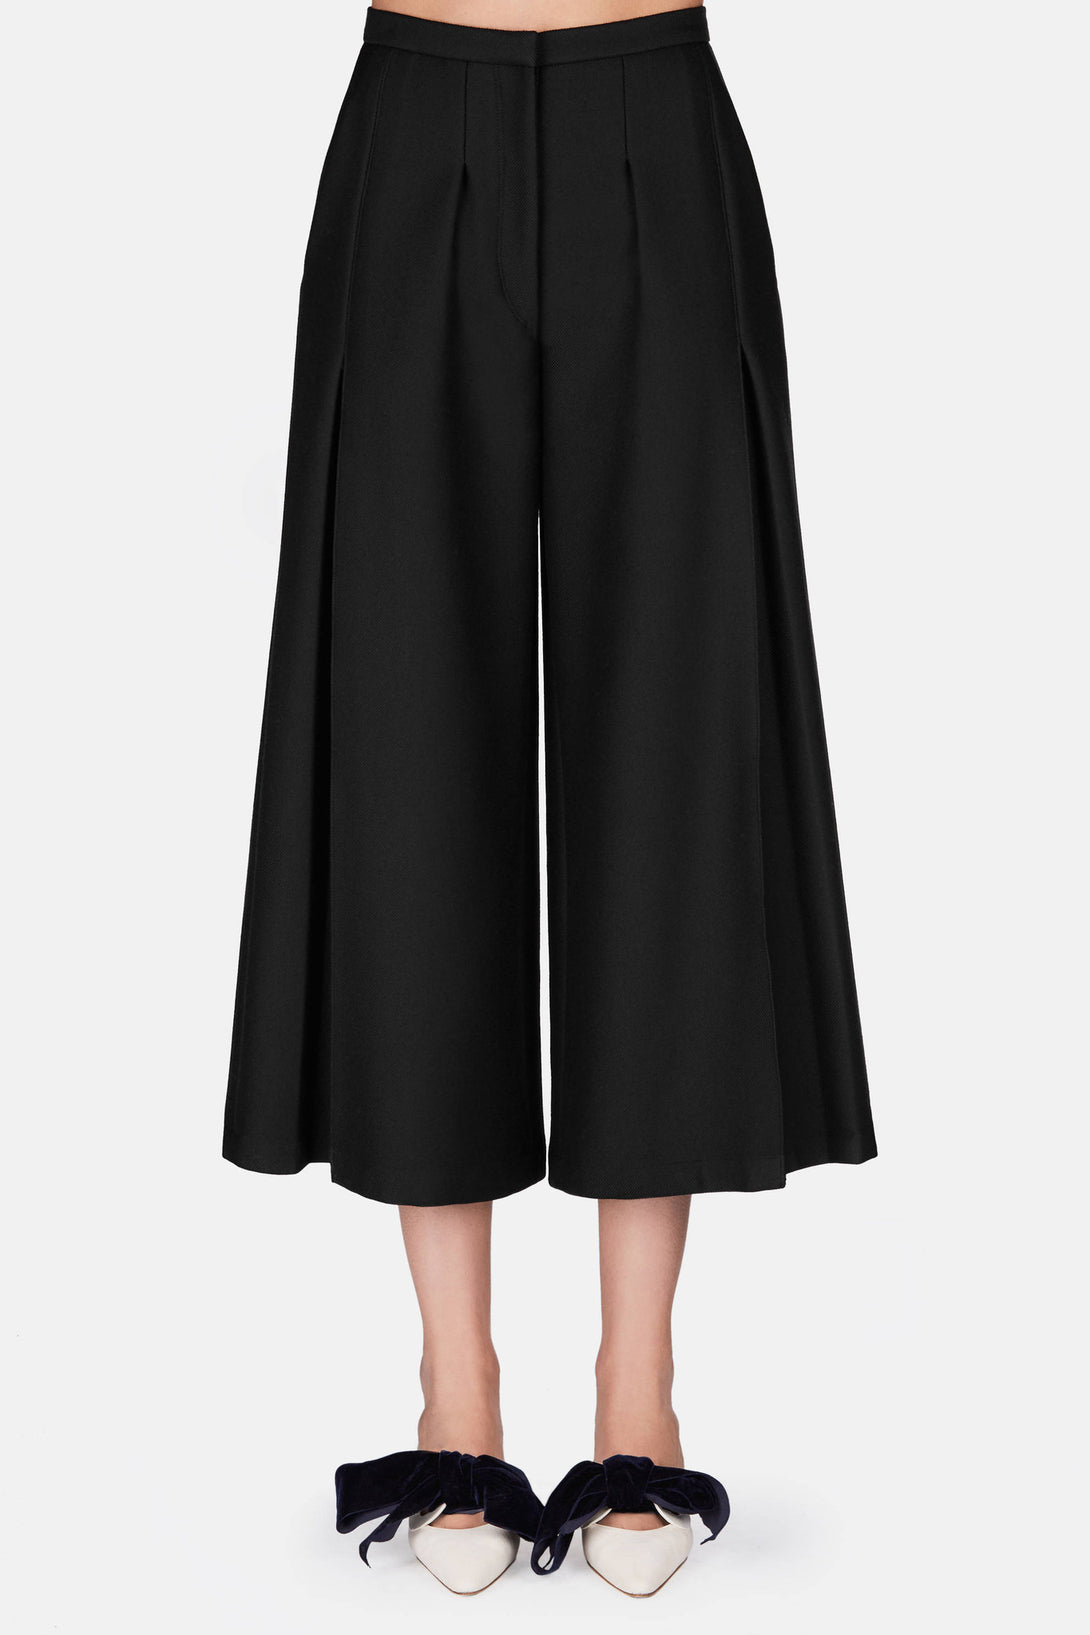 Louise Wide Leg Pant - Black